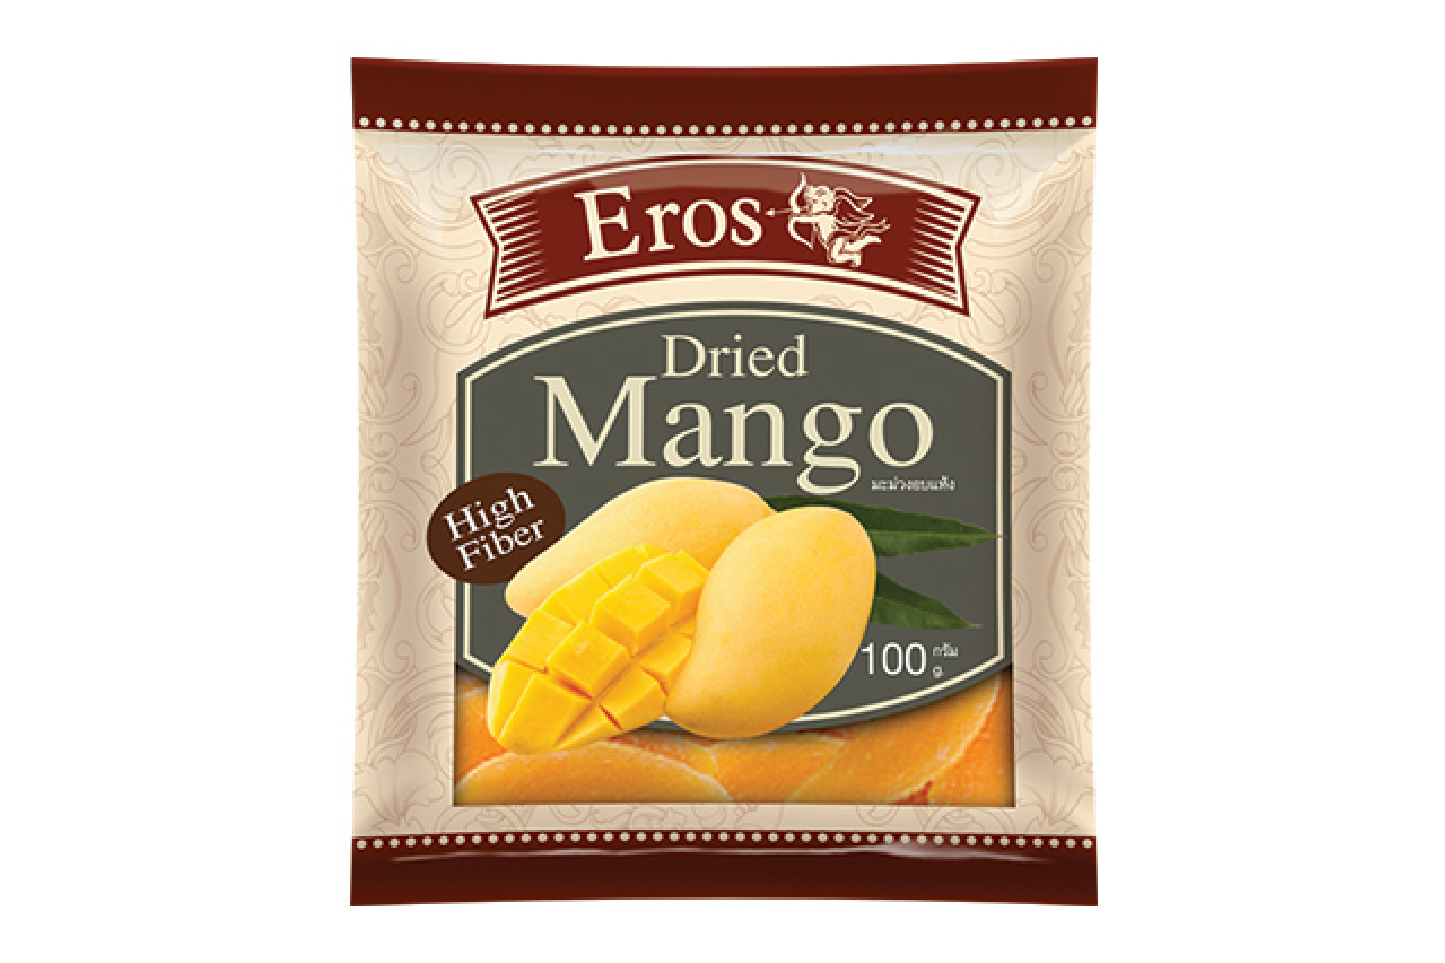 EROS Dried Mango